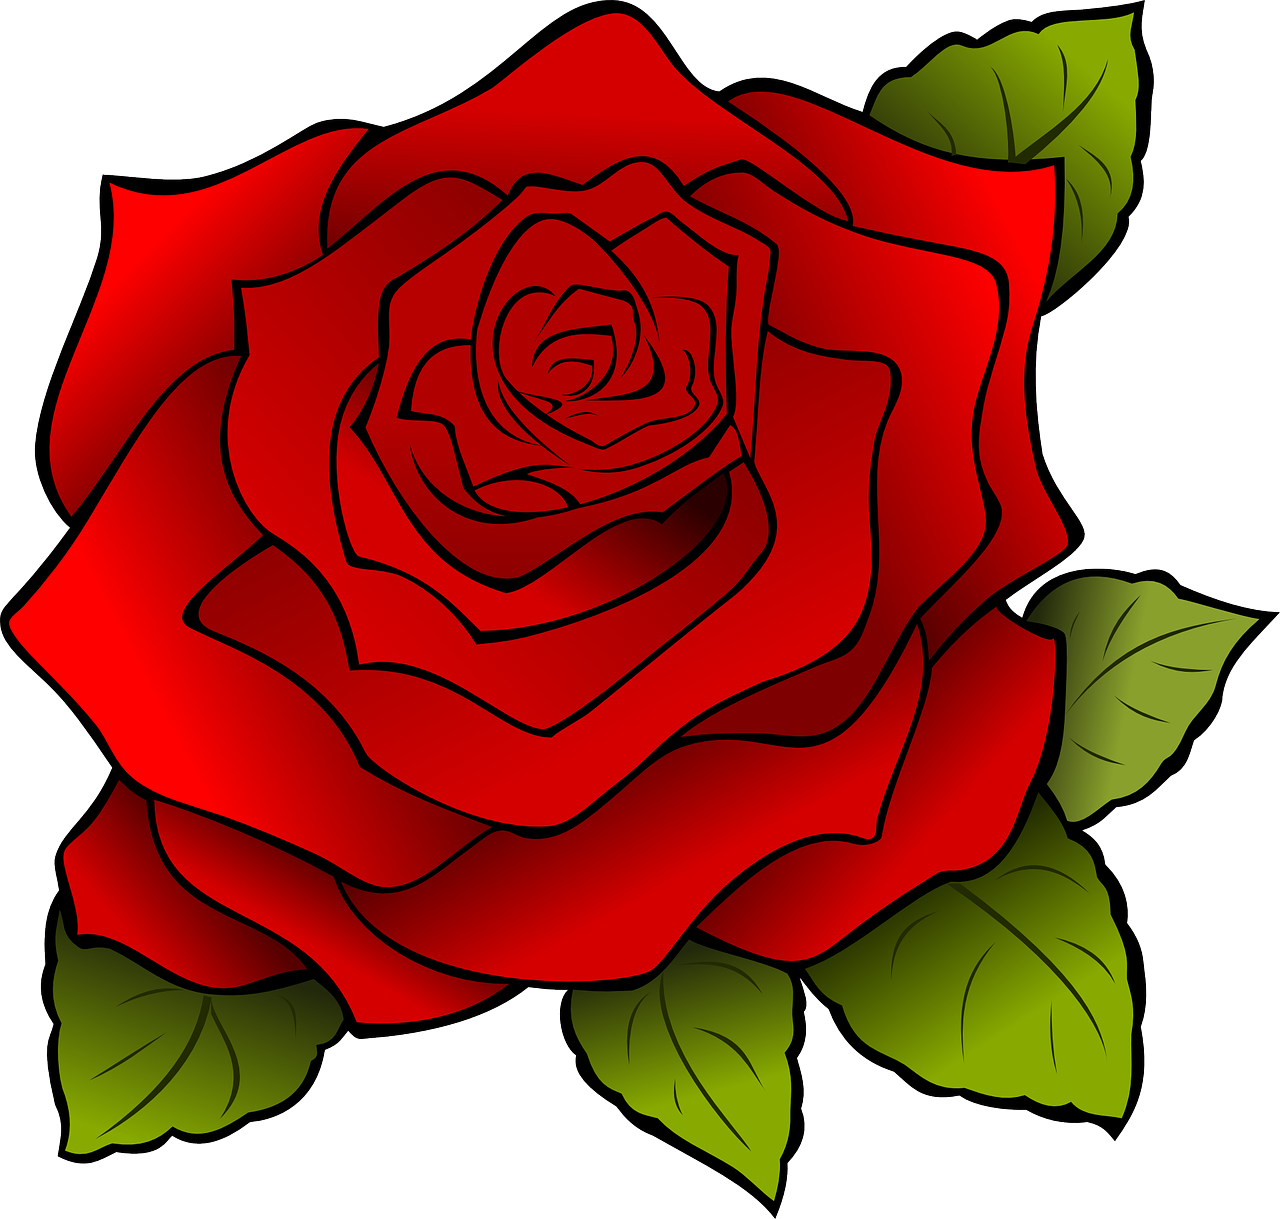 how to make a rose 2